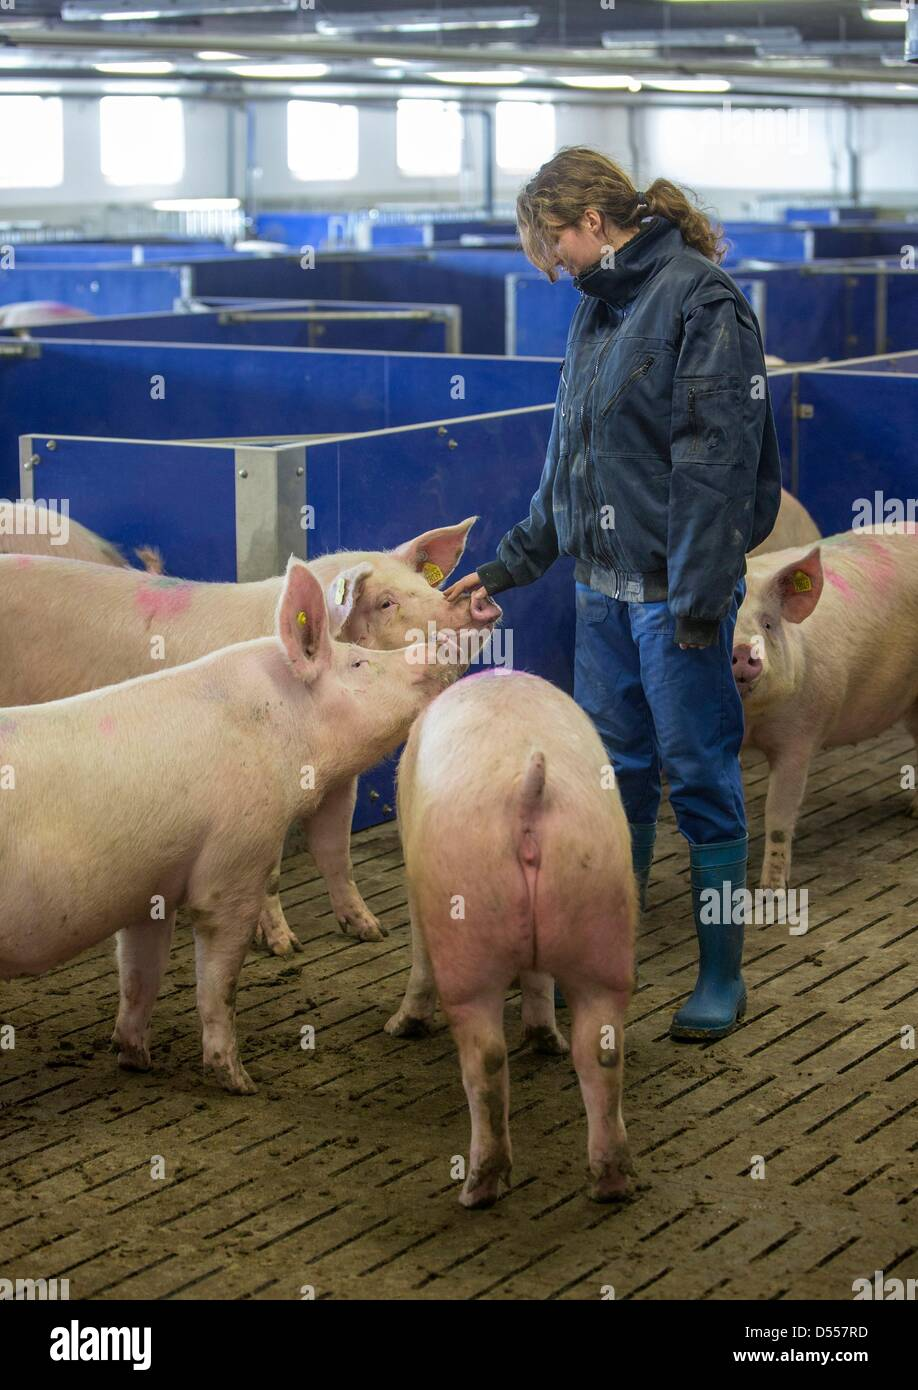 Pig breeder Carin Ebert examines the health condition of pigs at a pig farm in Wiegleben, Germany, 25 March 2013. Stock Photo